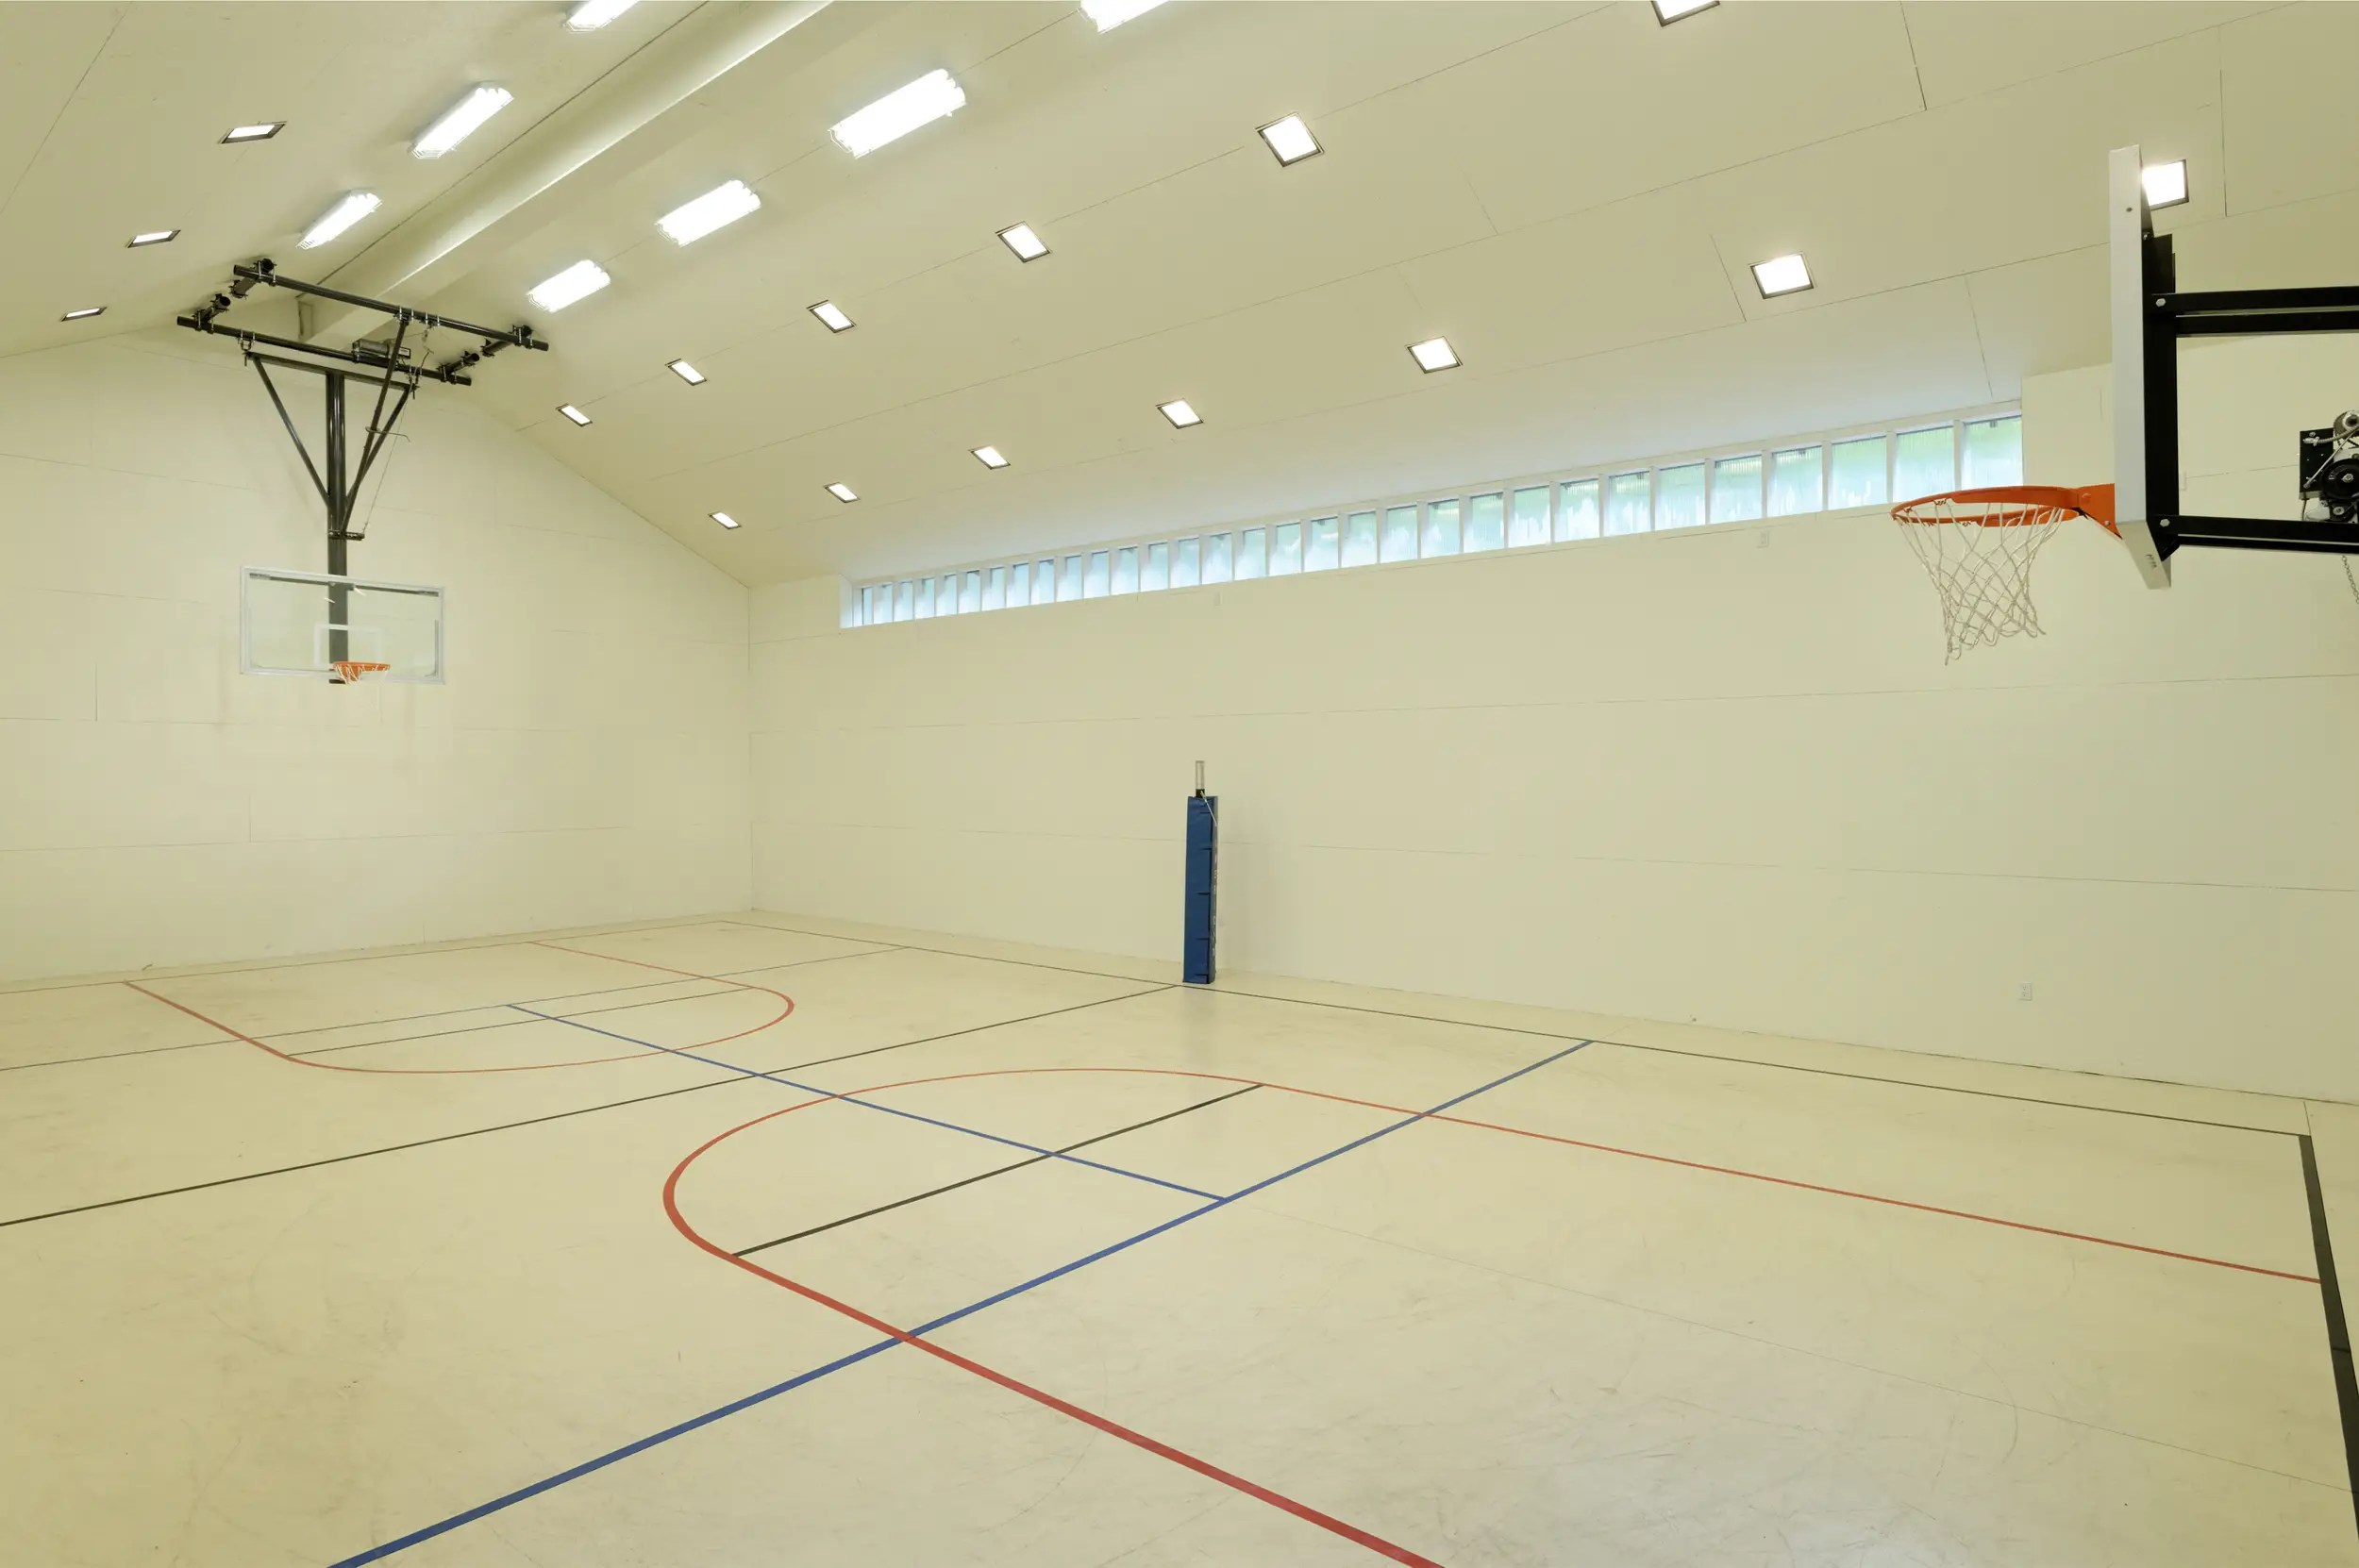 The basketball court is an unusual touch for a log cabin.